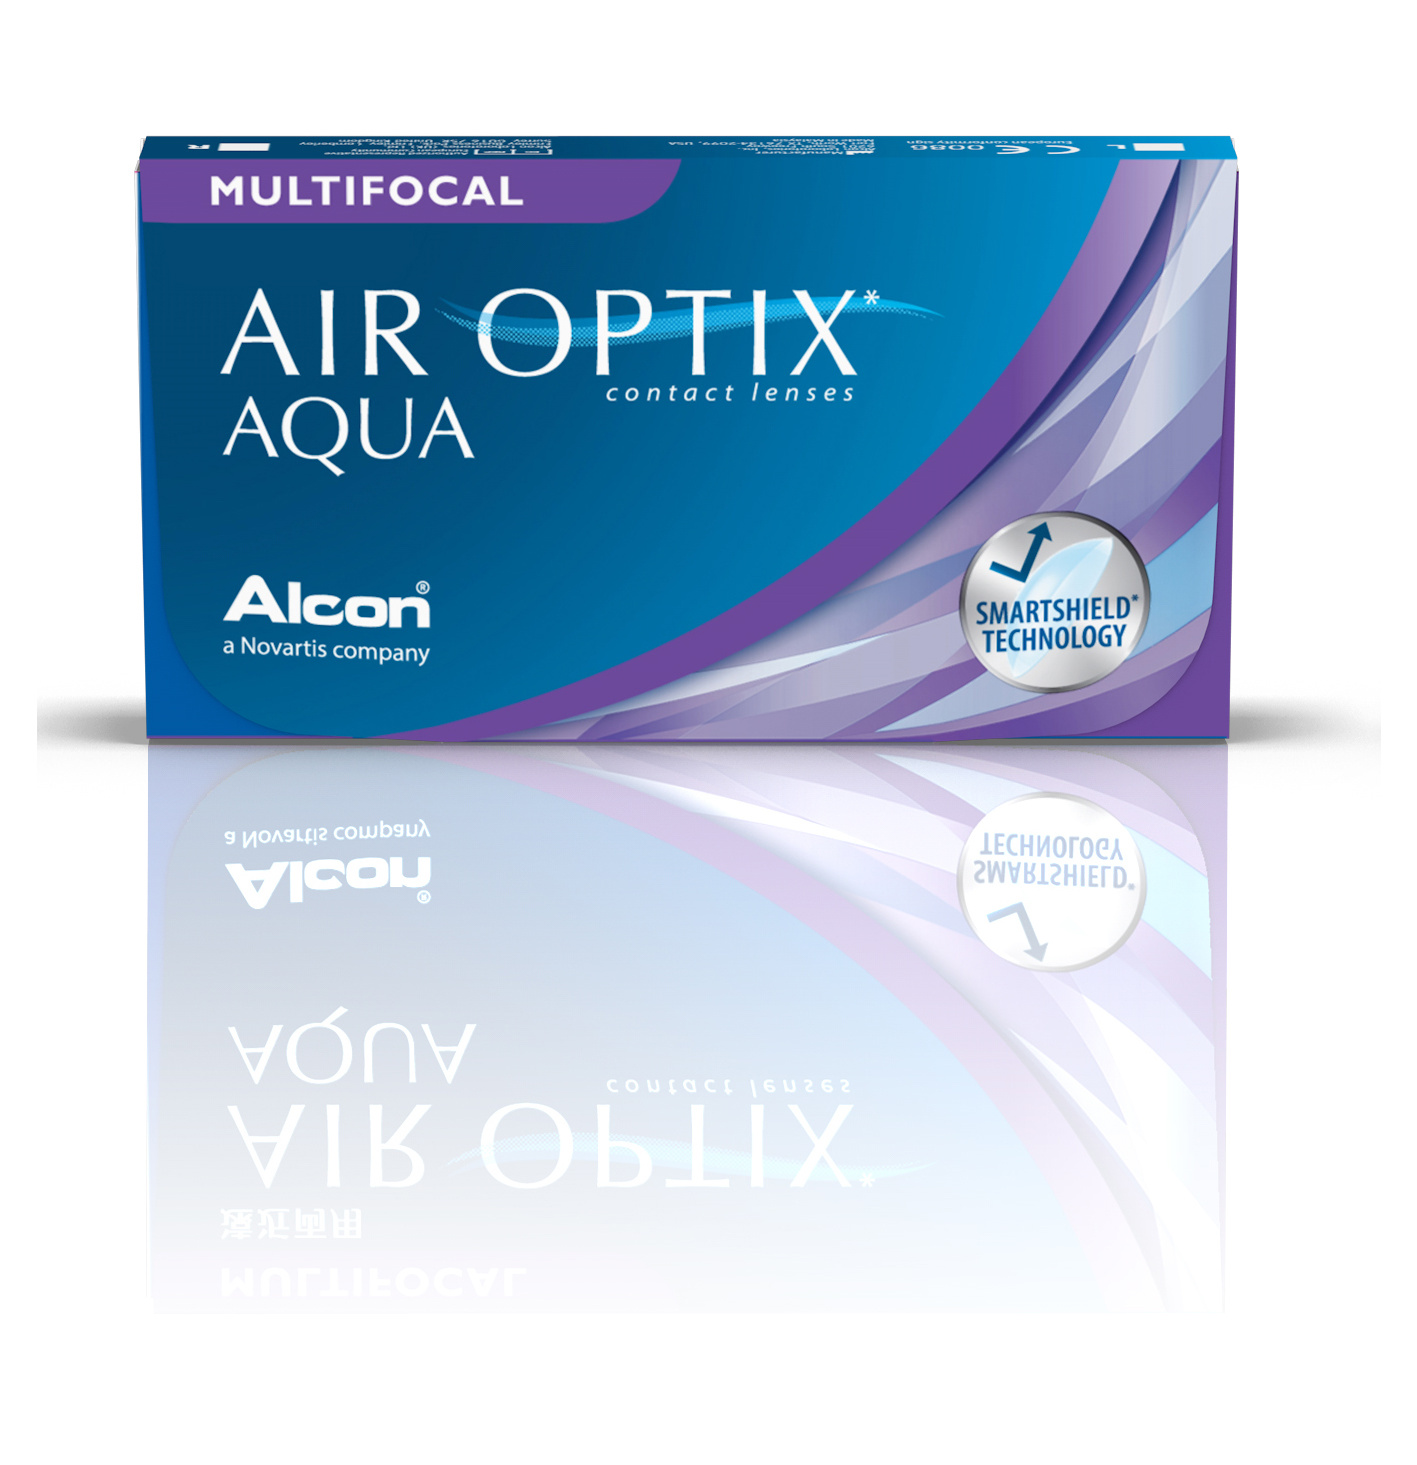 AIR OPTIX AQUA MULTIFOCAL.jpg